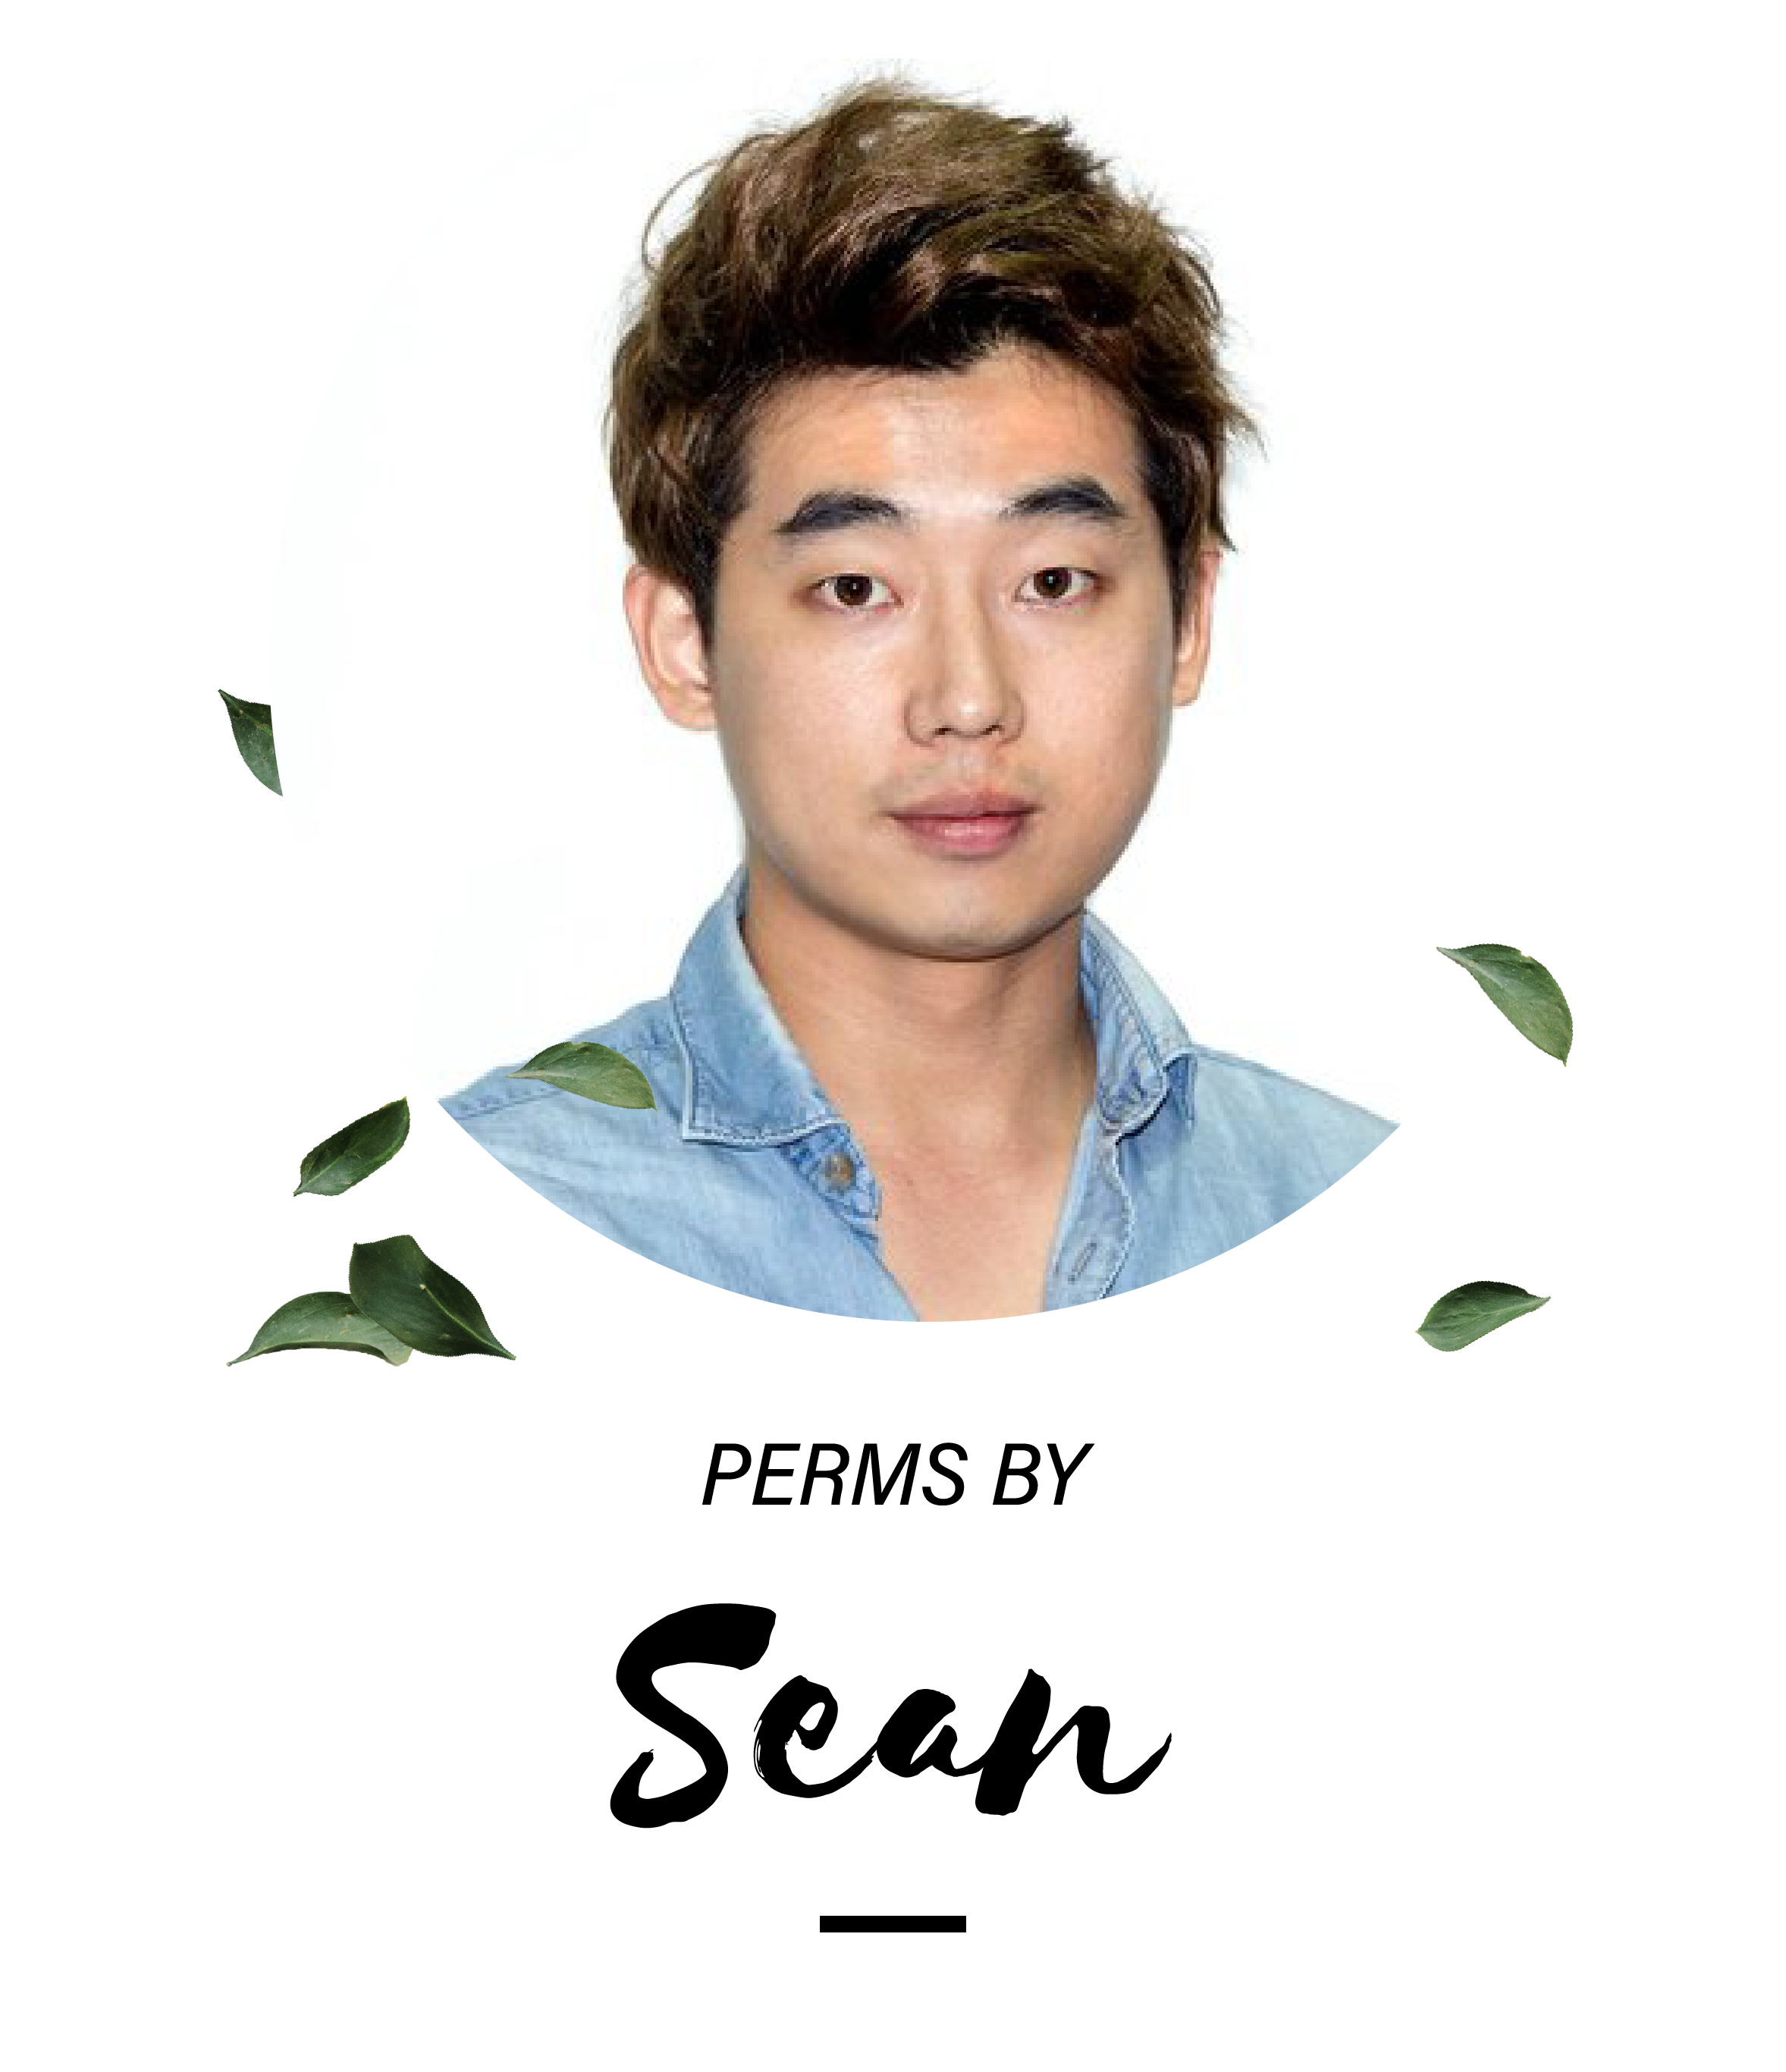 Korean Stylist Images_For Perm Page-04.png